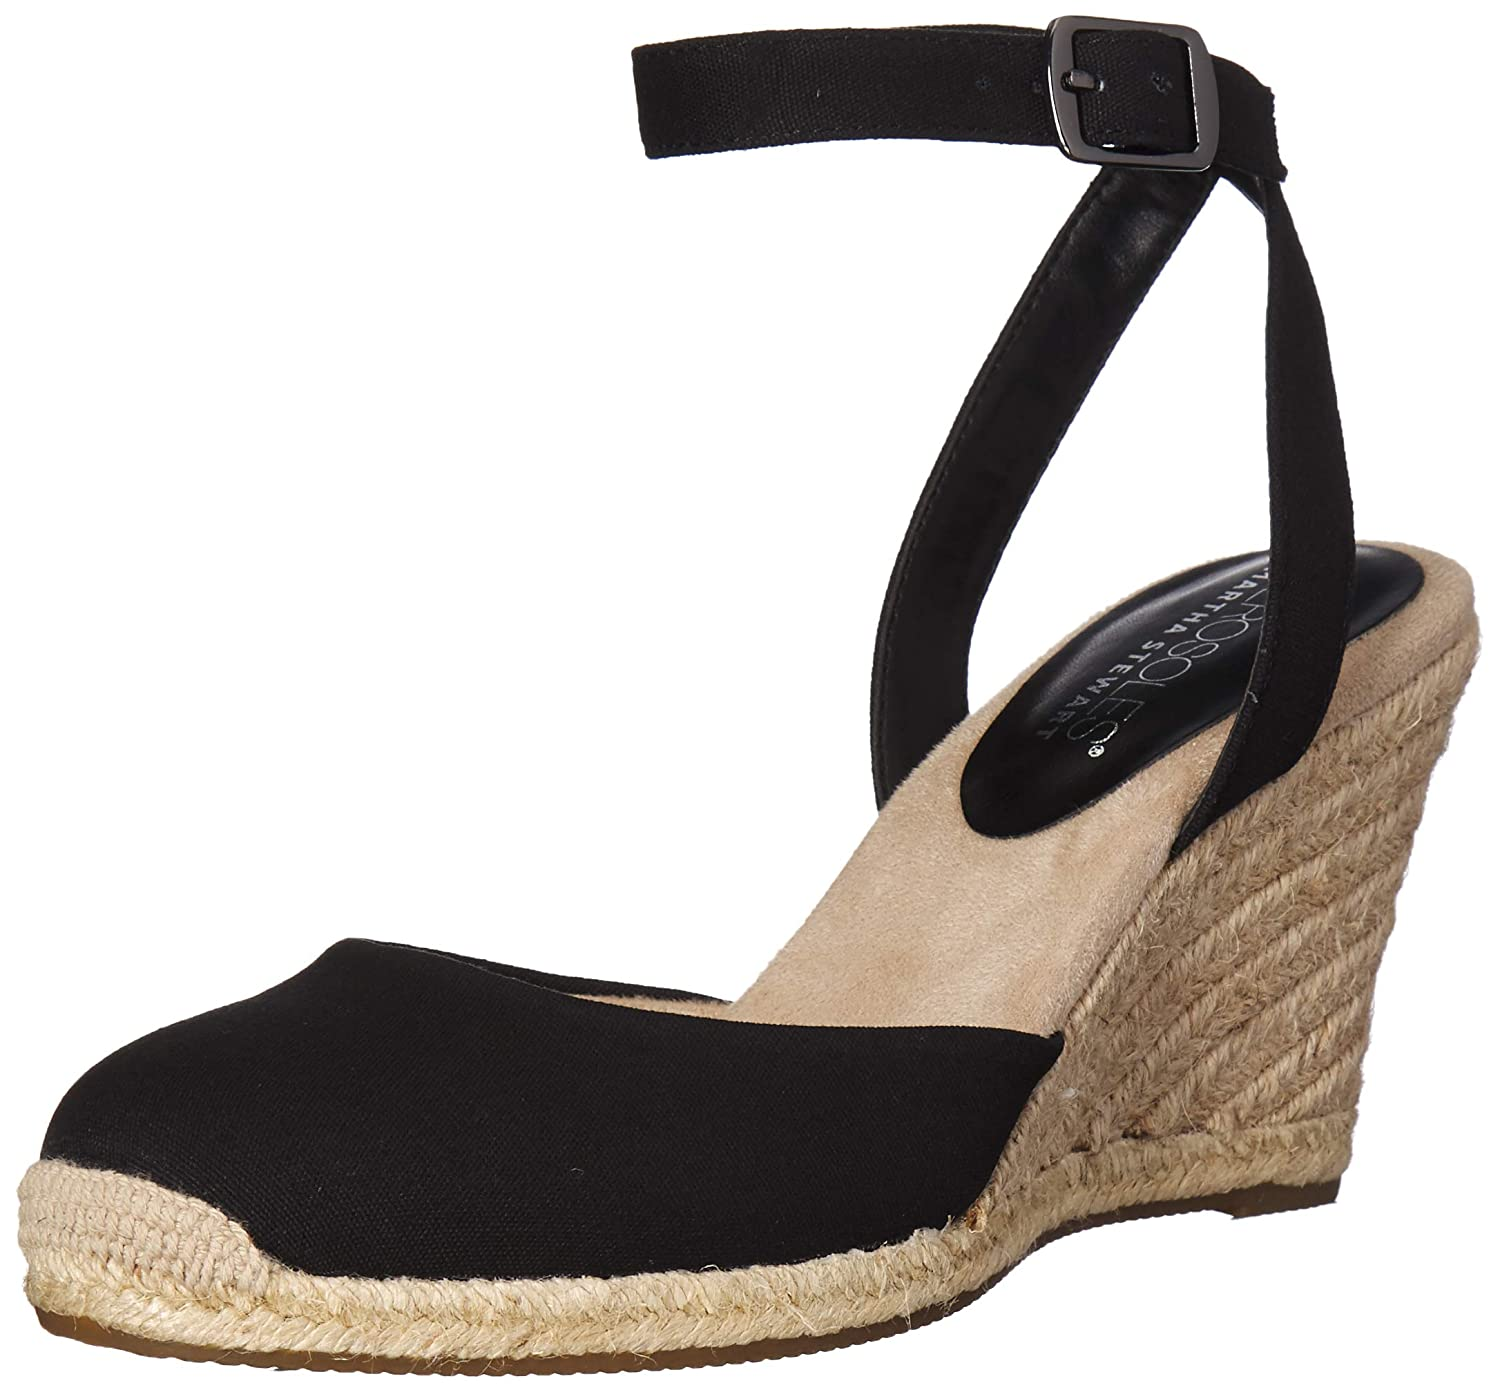 Black Fabric Aerosoles Womens Martha Stewart Meadow Wedge Sandal